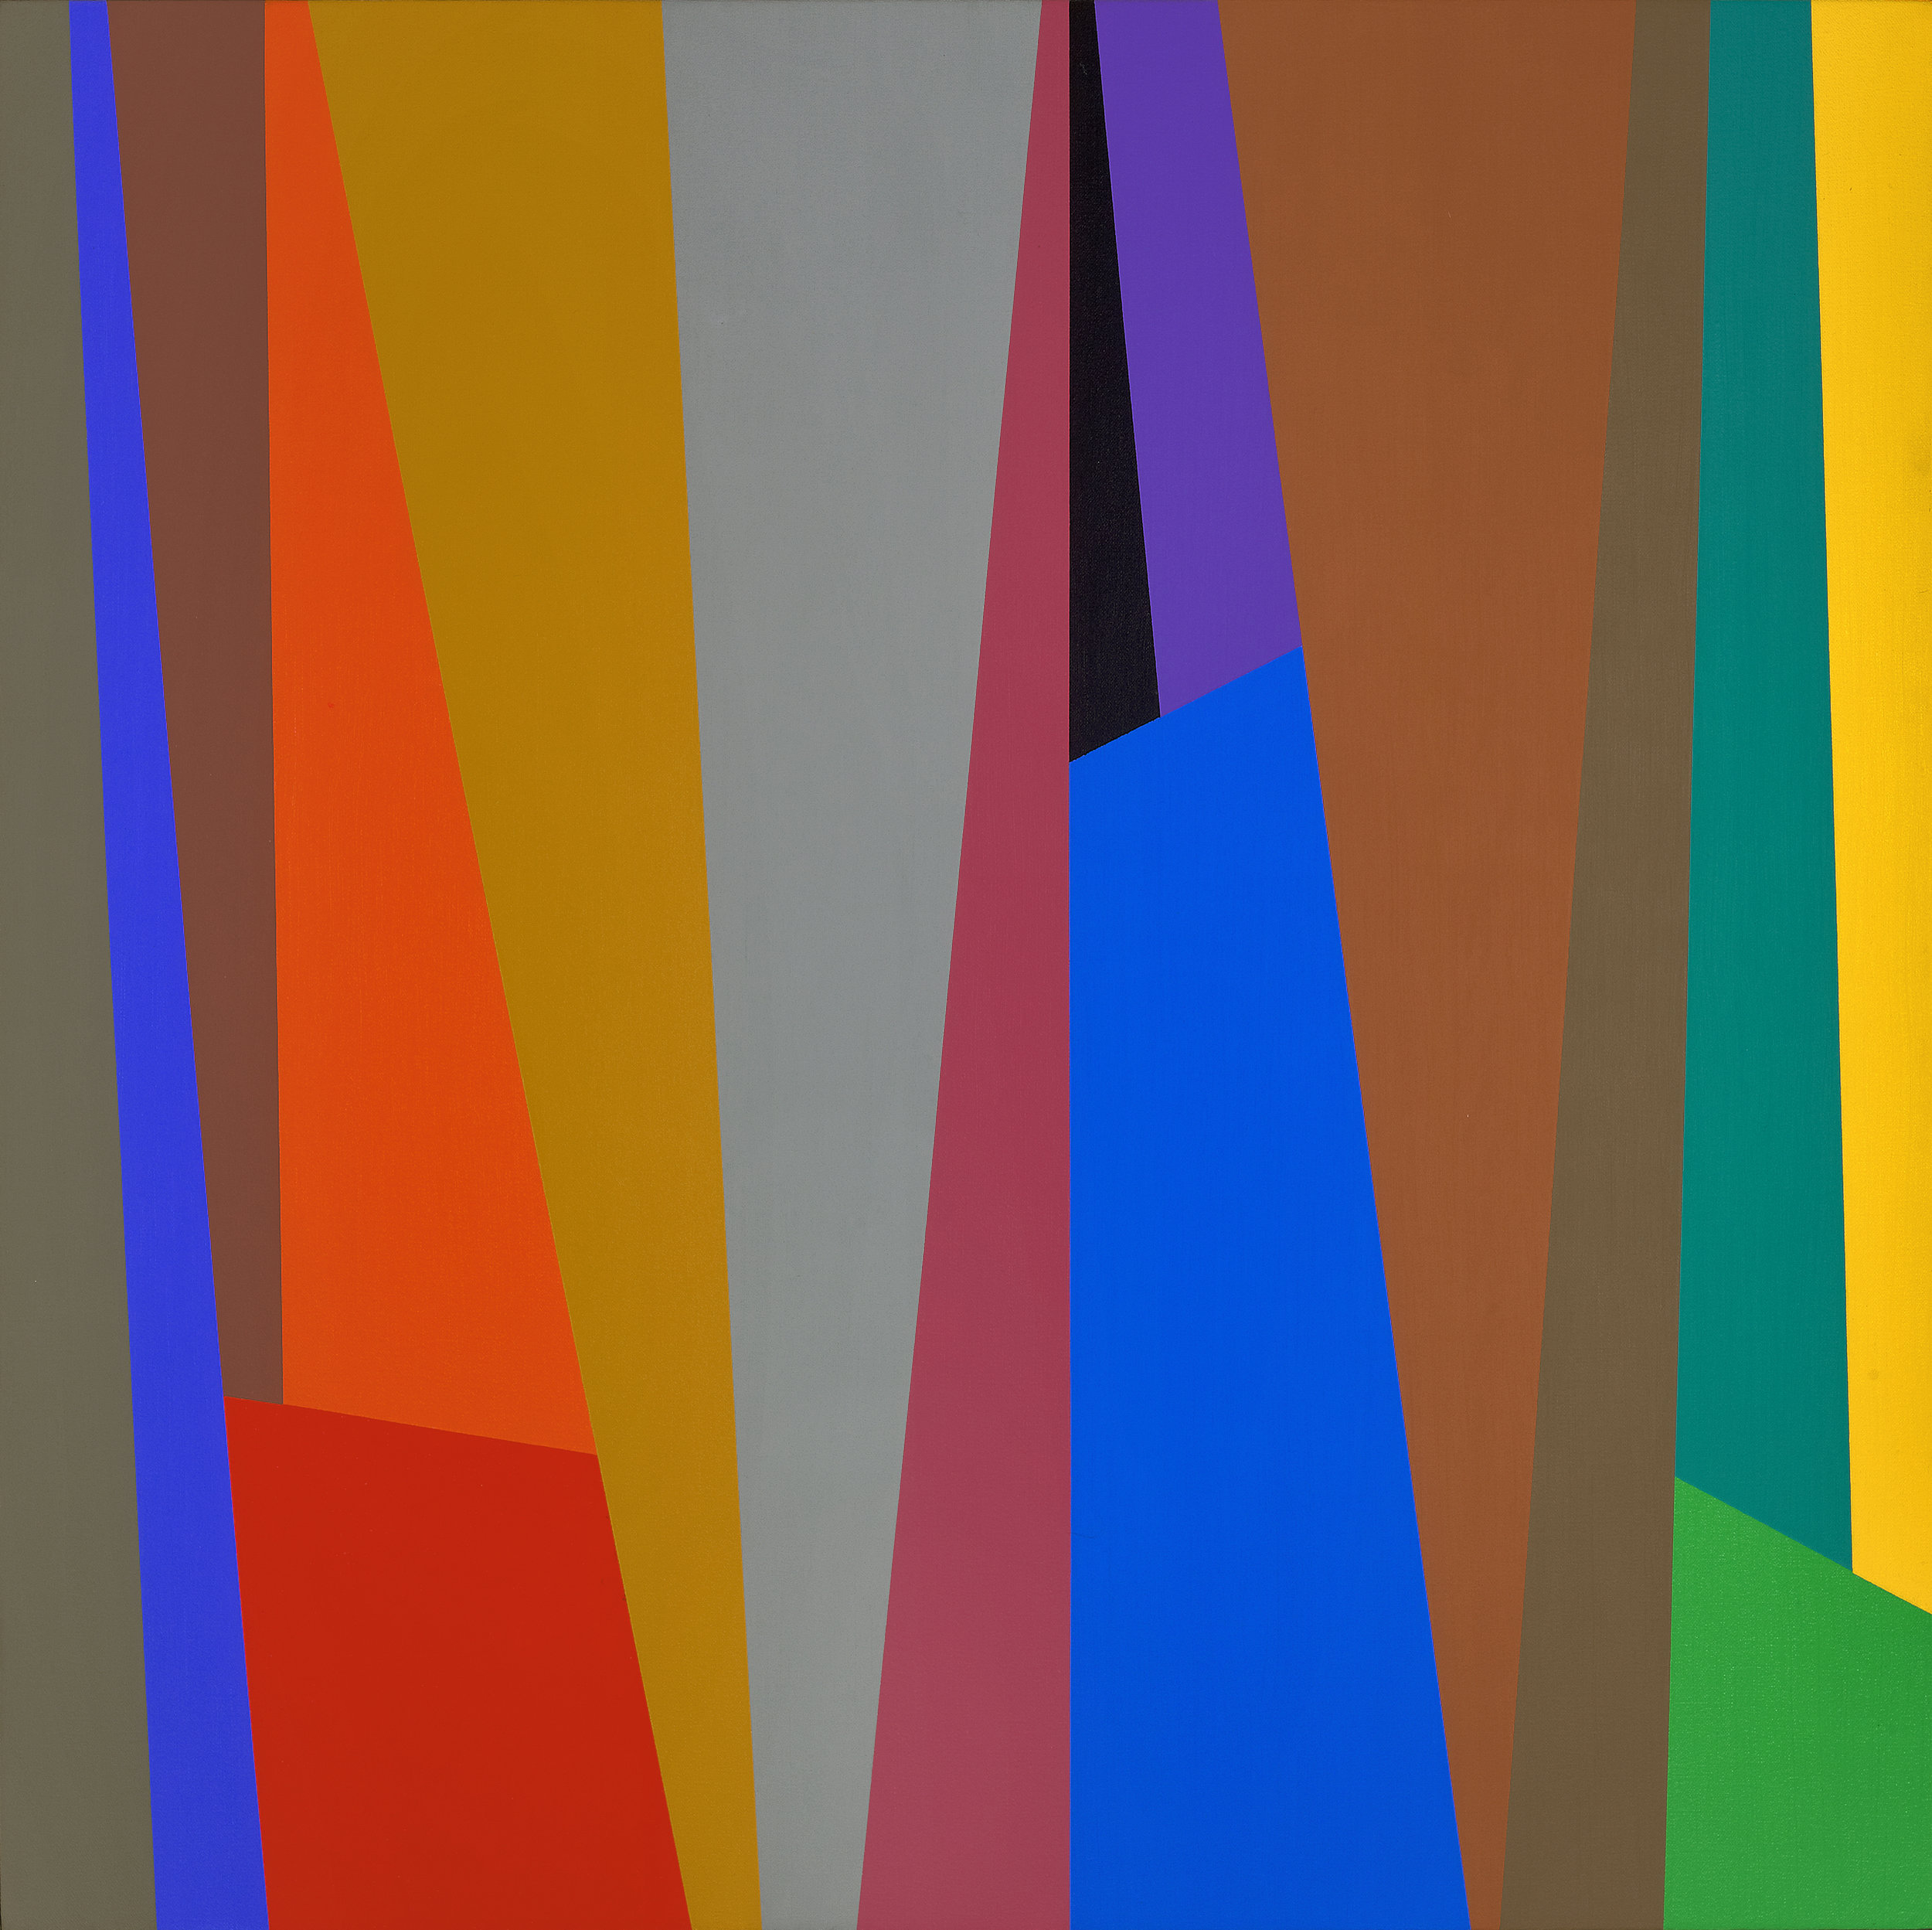 #1 , 1994  oil on canvas 30 x 30 inches; 76.2 x 76.2 centimeters